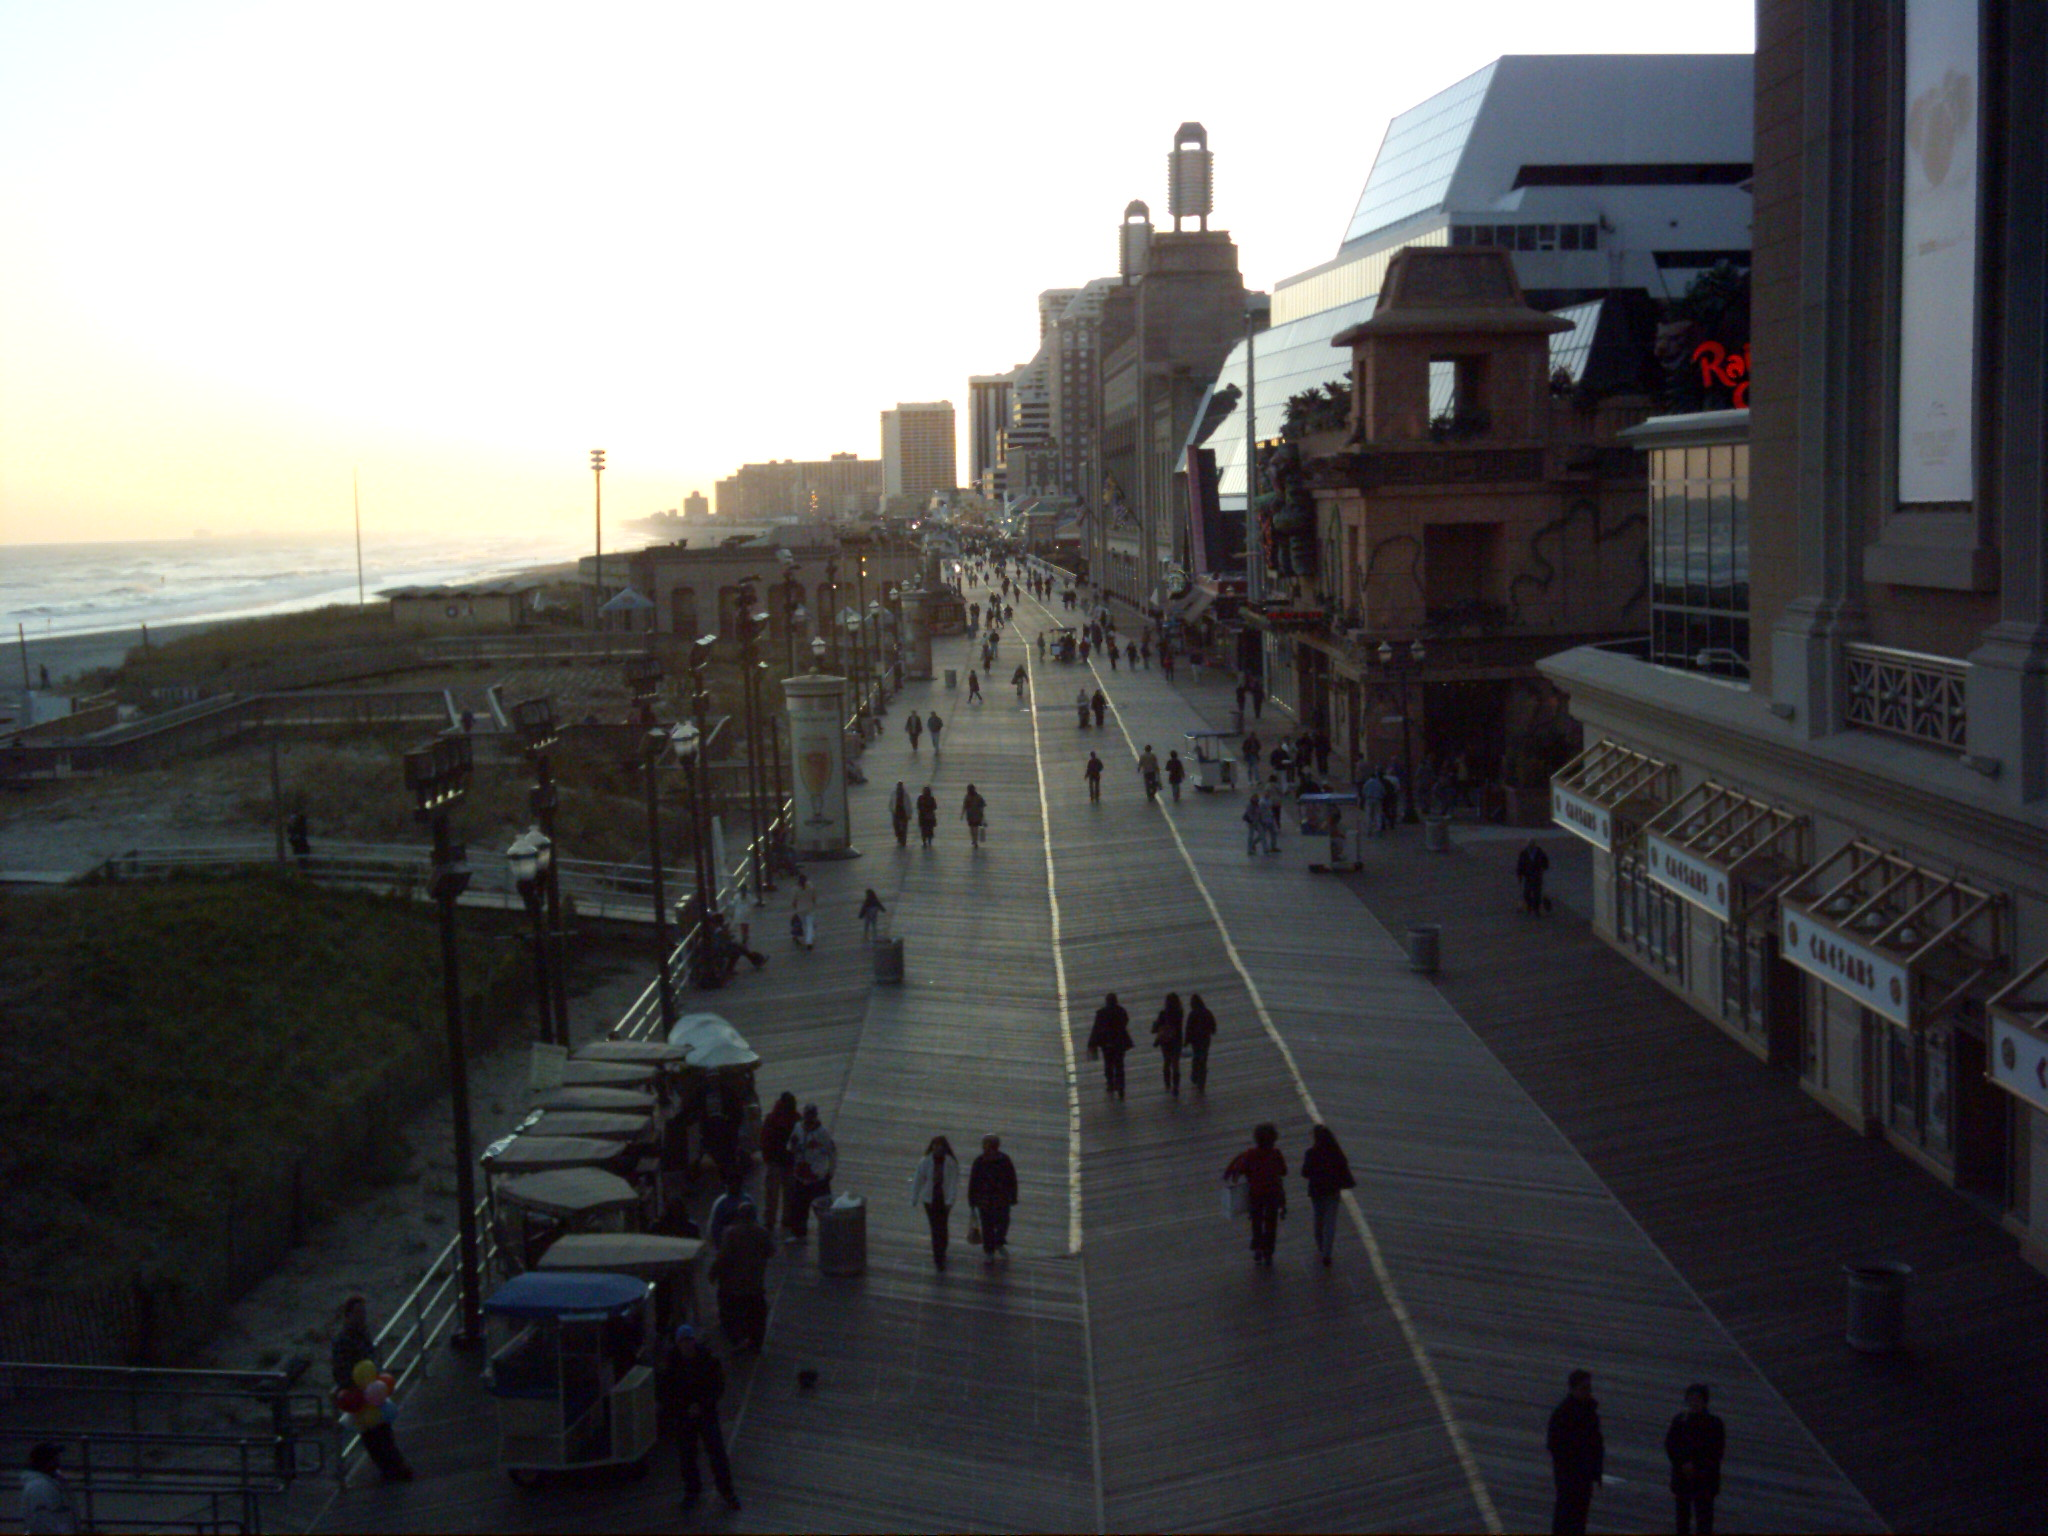 The View, Boardwalk